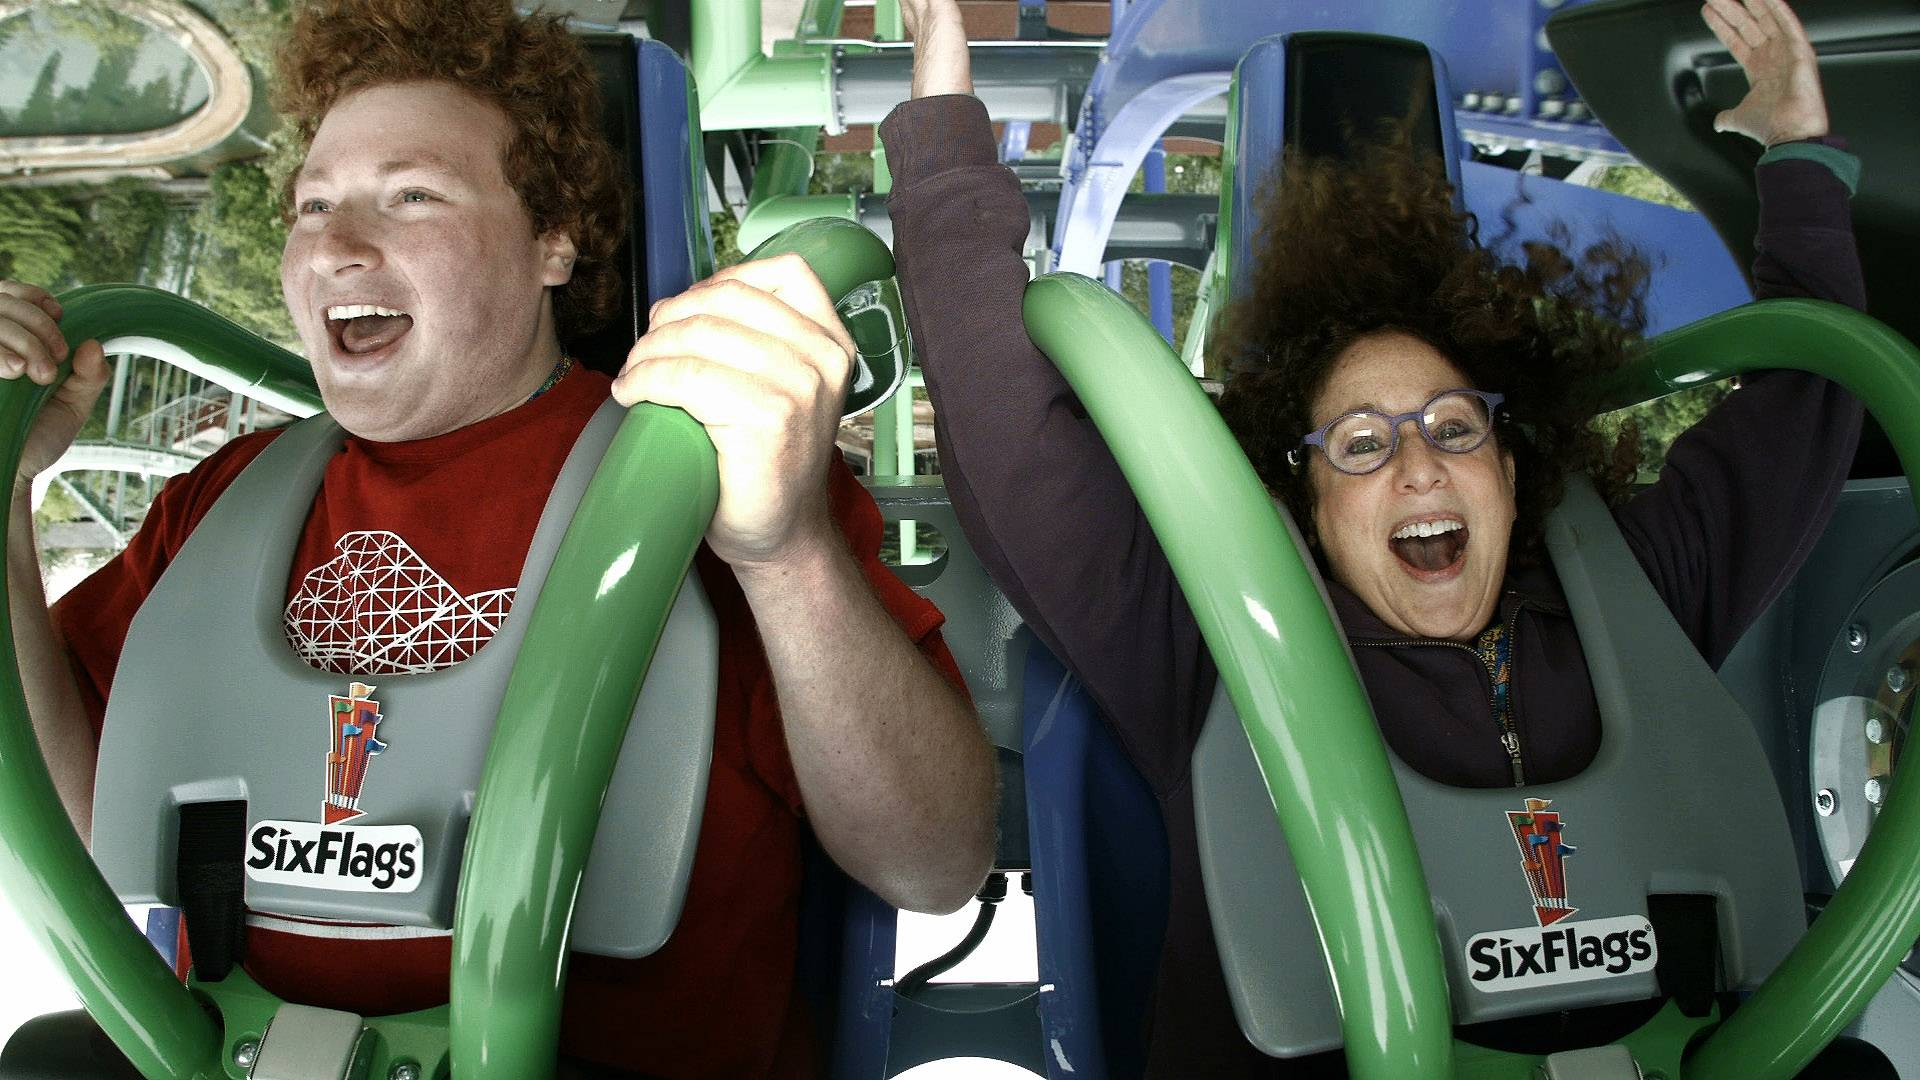 Ryan Flamm, of Deerfield and Alissa Behn of Gurnee, ride the Joker Free Fly Coaster on Thursday at Six Flags Great America in Gurnee. The amusement park will be opening the ride to the public on Saturday, May 27.]